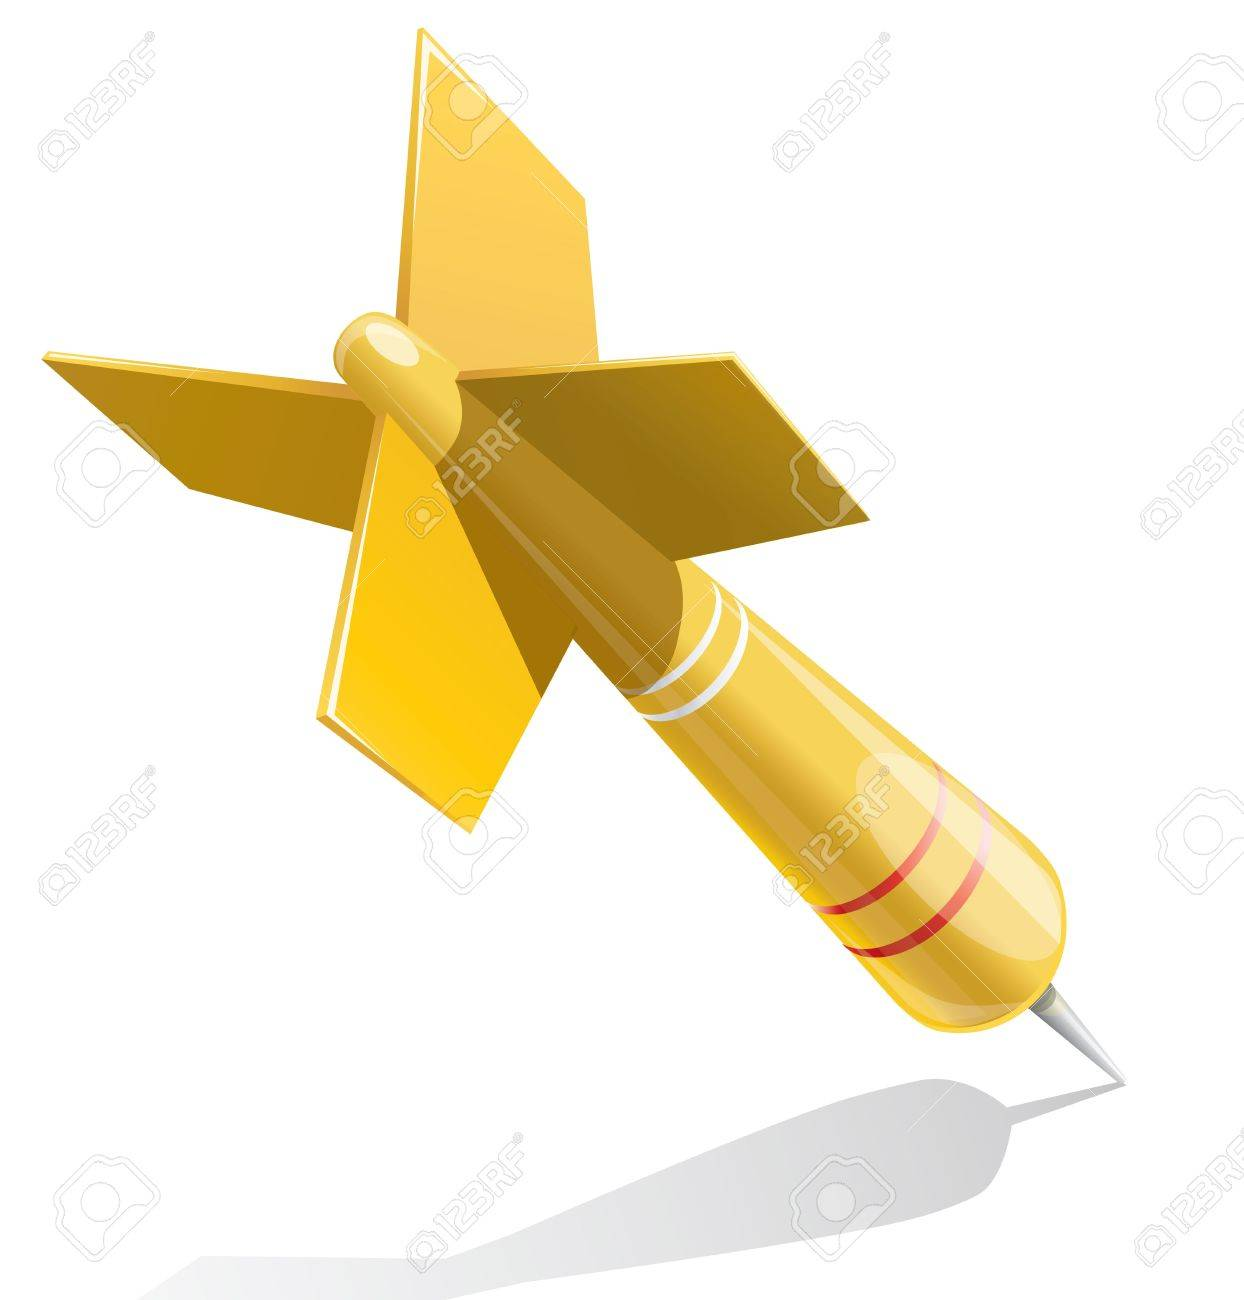 Dart target aim yellow illustration Stock Vector - 18447496